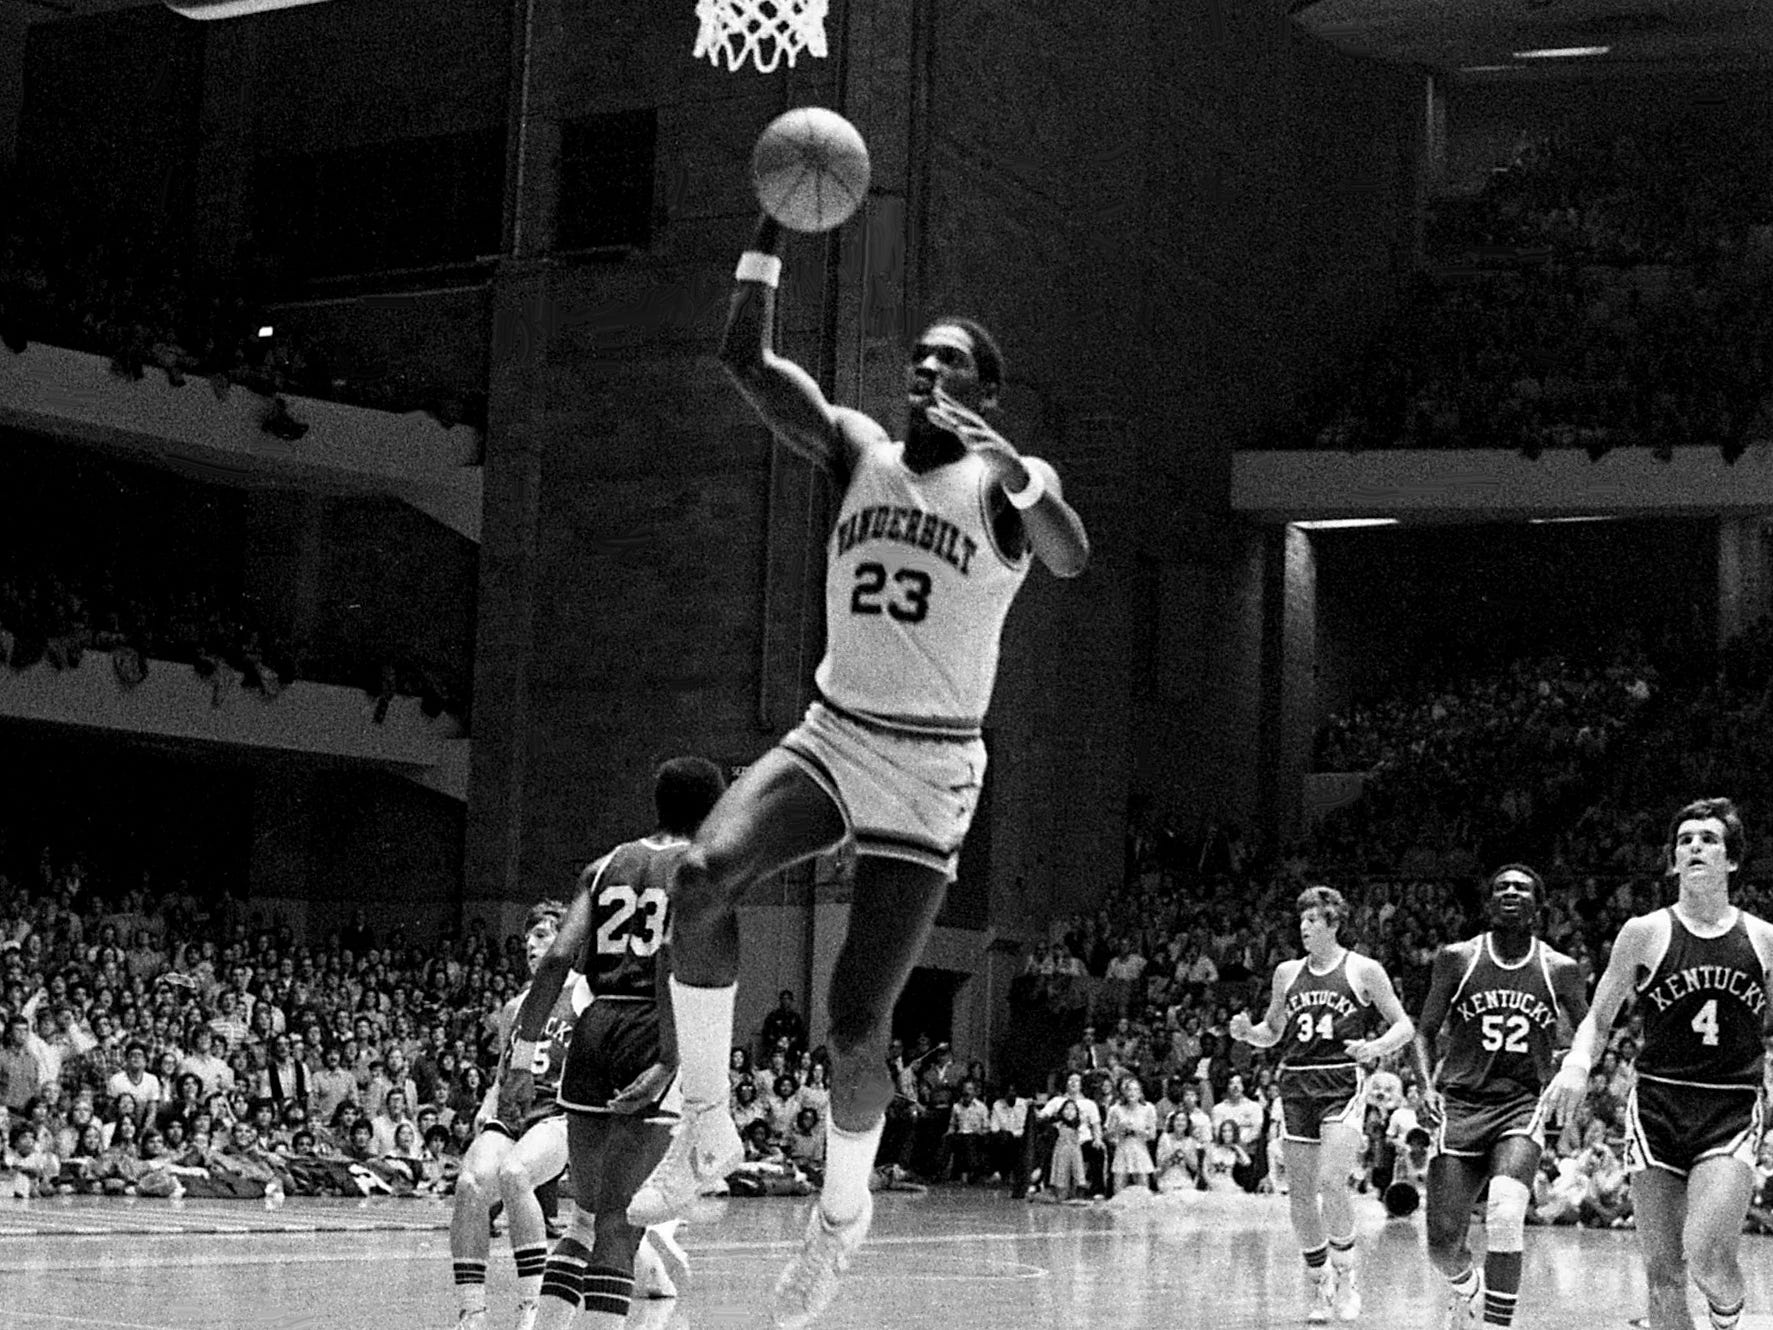 Vanderbilt junior Charles Davis (23) goes up for two of his 31 points to lead the 16th-ranked Commodores to a 68-58 victory over the defending NCAA champions Kentucky before a crowd of 15,500 at Memorial Gym on Feb. 7, 1979. Davis set a Memorial Gym record for field goal accuracy with 13 field goals on 15 shots.